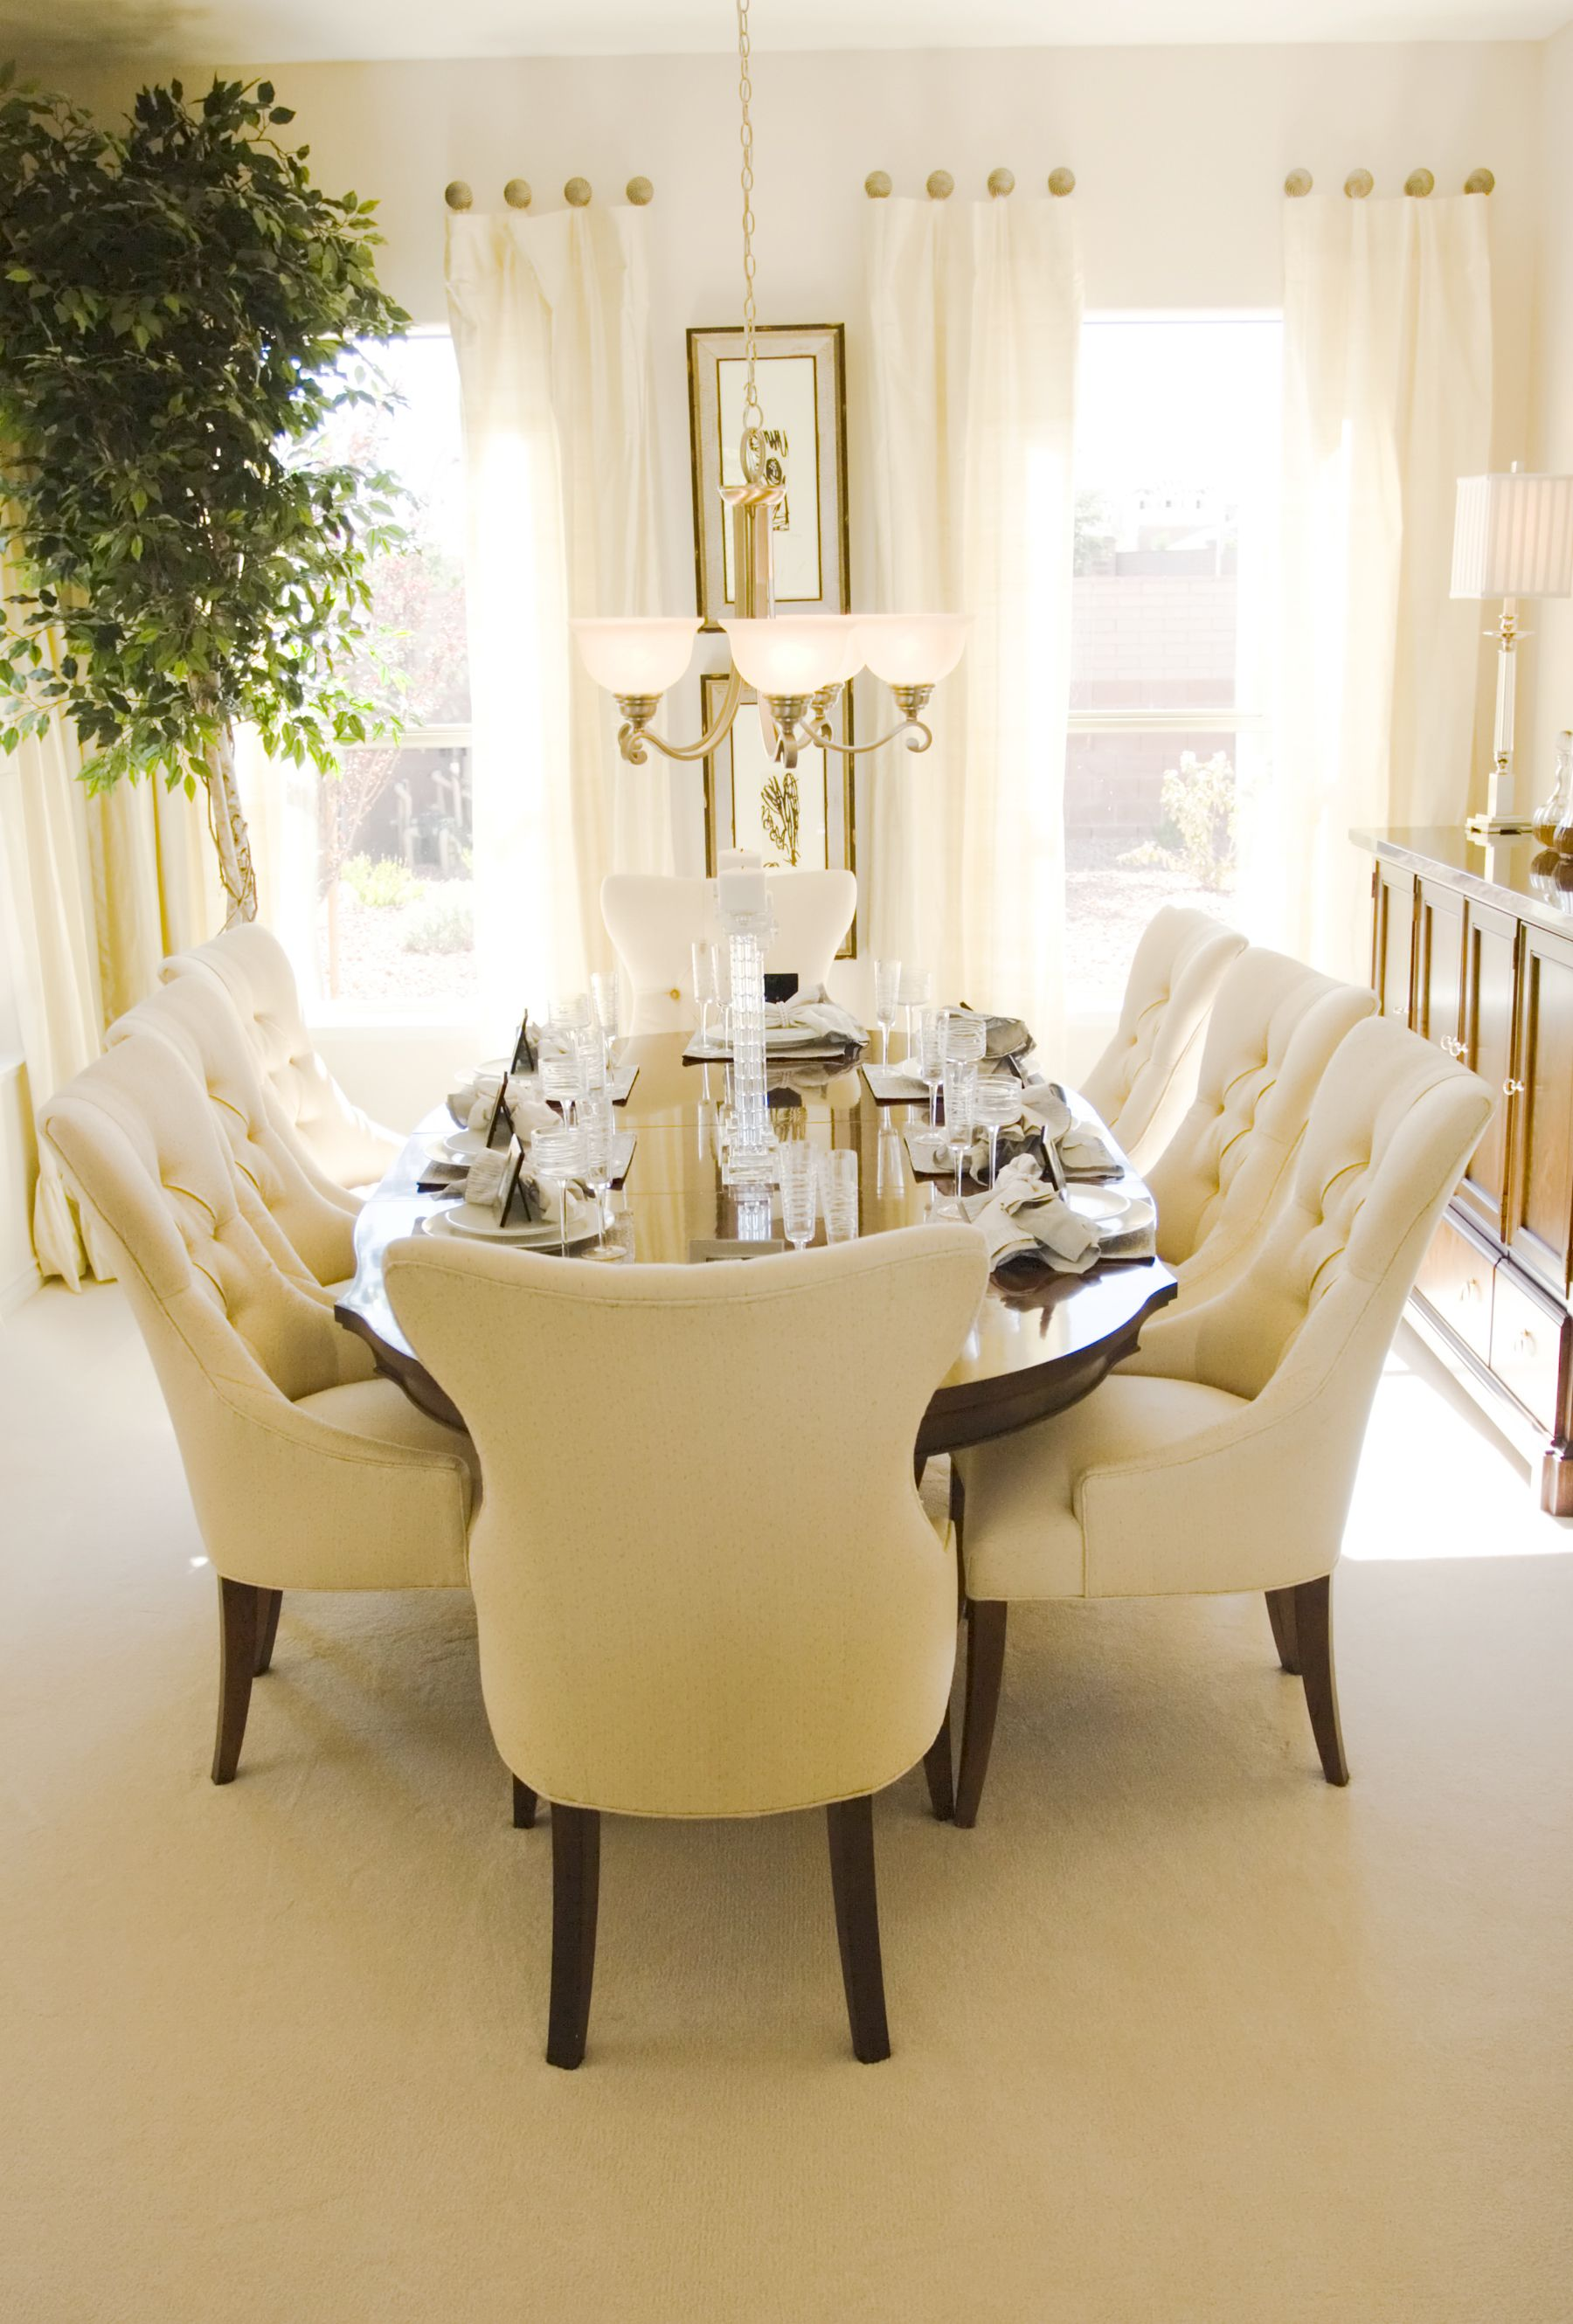 36 Ultra Luxury Dining Room Designs Best Of The Best Photos Dining Room Interiors Luxury Dining Room Yellow Dining Room